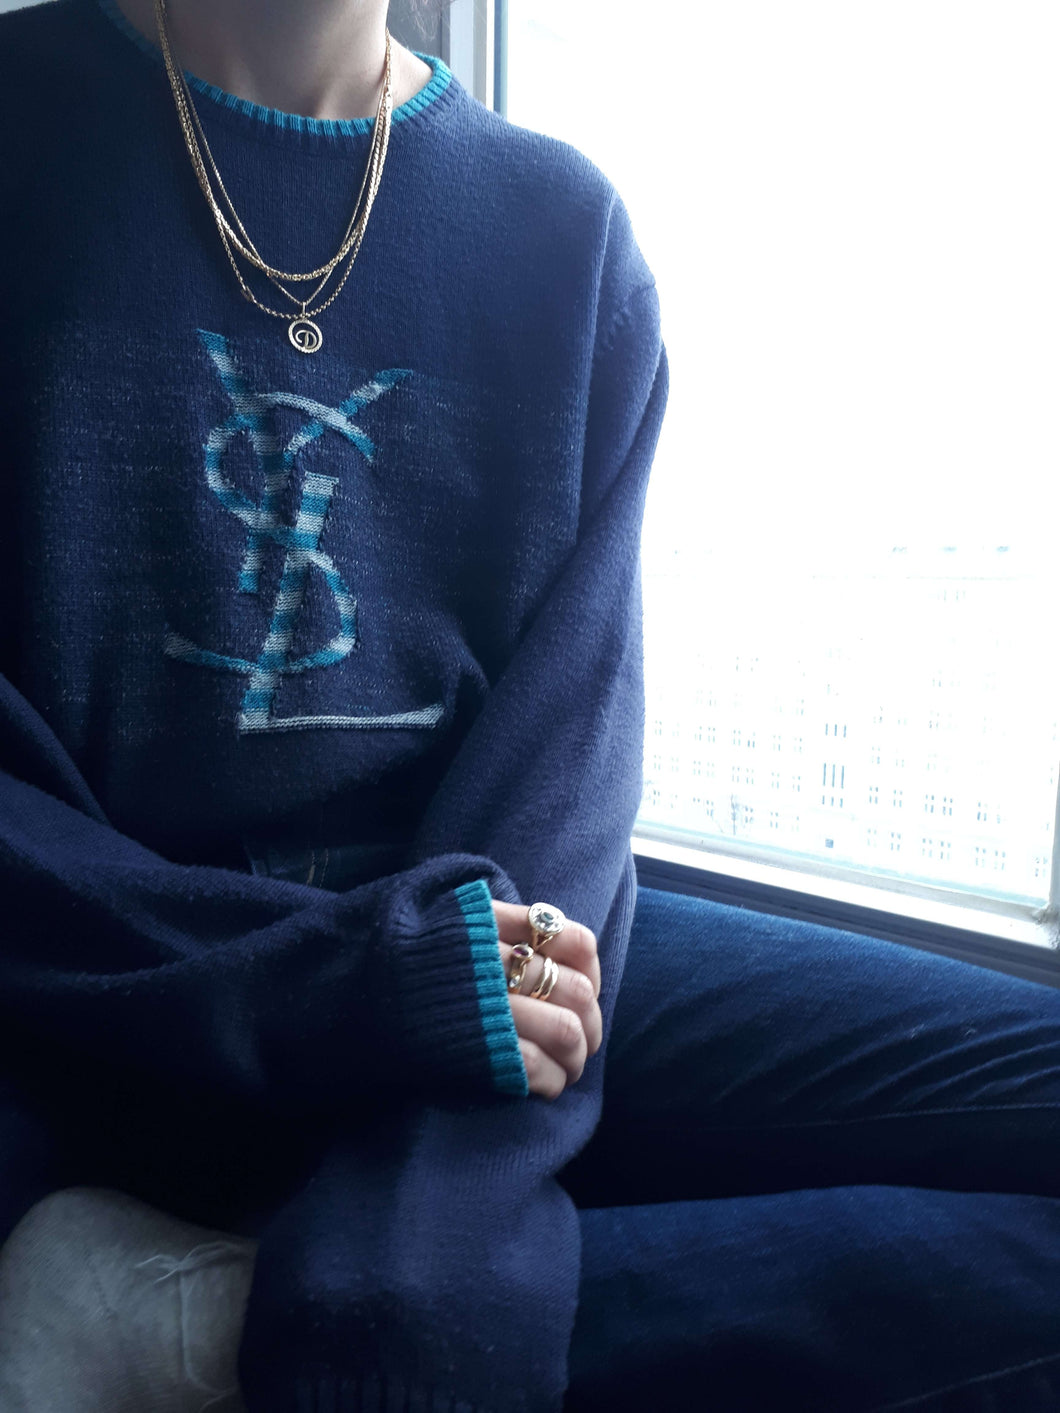 YSL SWEATER | Yves Saint Laurent | Oversized | M - L:[Past out]:[vintage clothes]